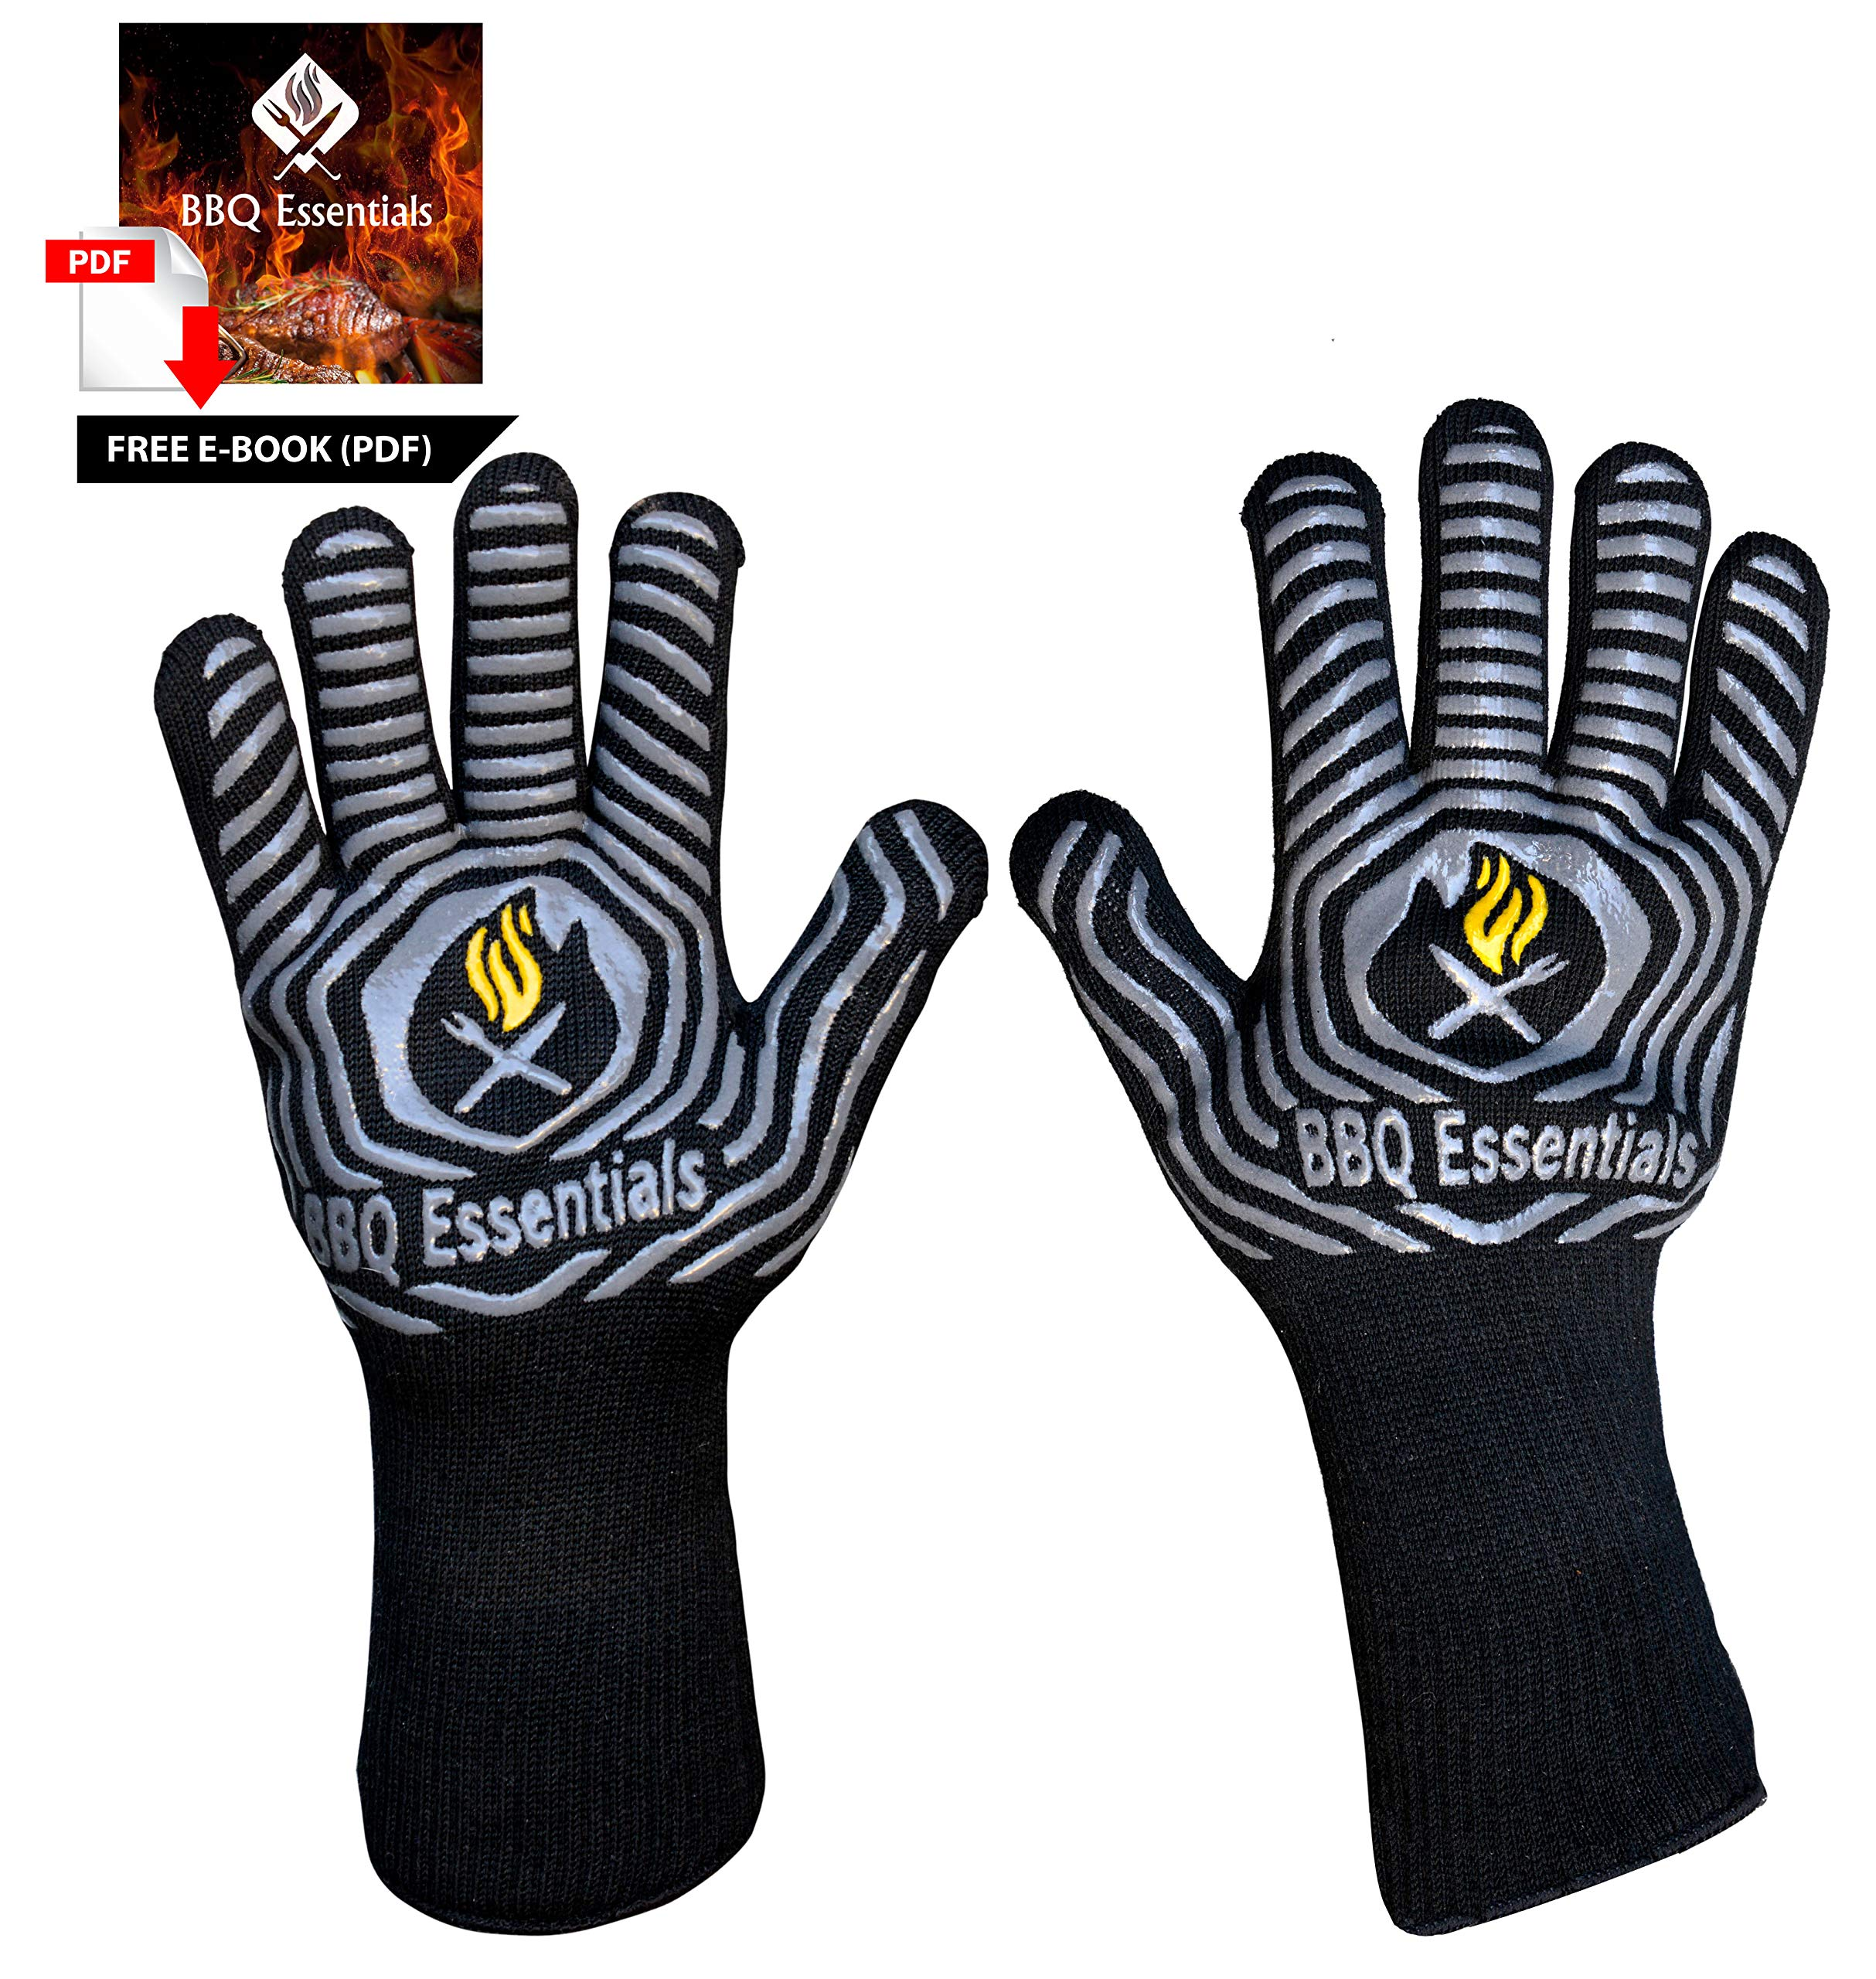 BBQ Essentials Heat Resistant BBQ Gloves | 1472°F Extreme Heat Proof Oven Mitts | One Size Fits All Silicone Based Fire Safety Gloves for Cooking, Grilling, Baking, Camping, Pot Handling, Free E-Book